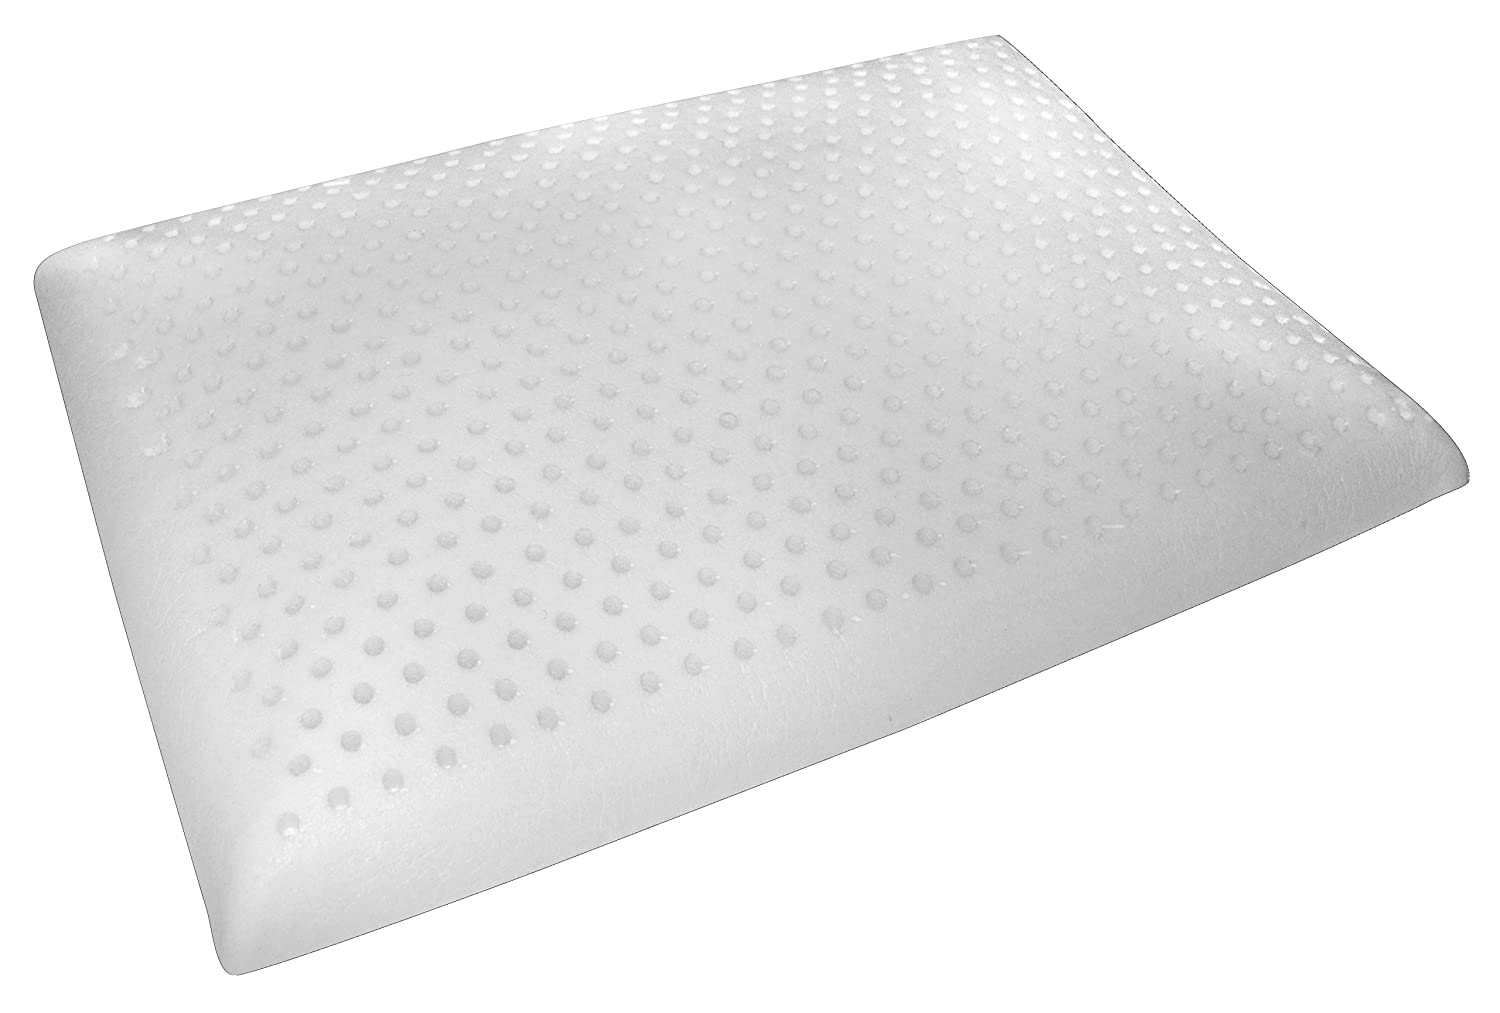 Thin pillow for back sleepers